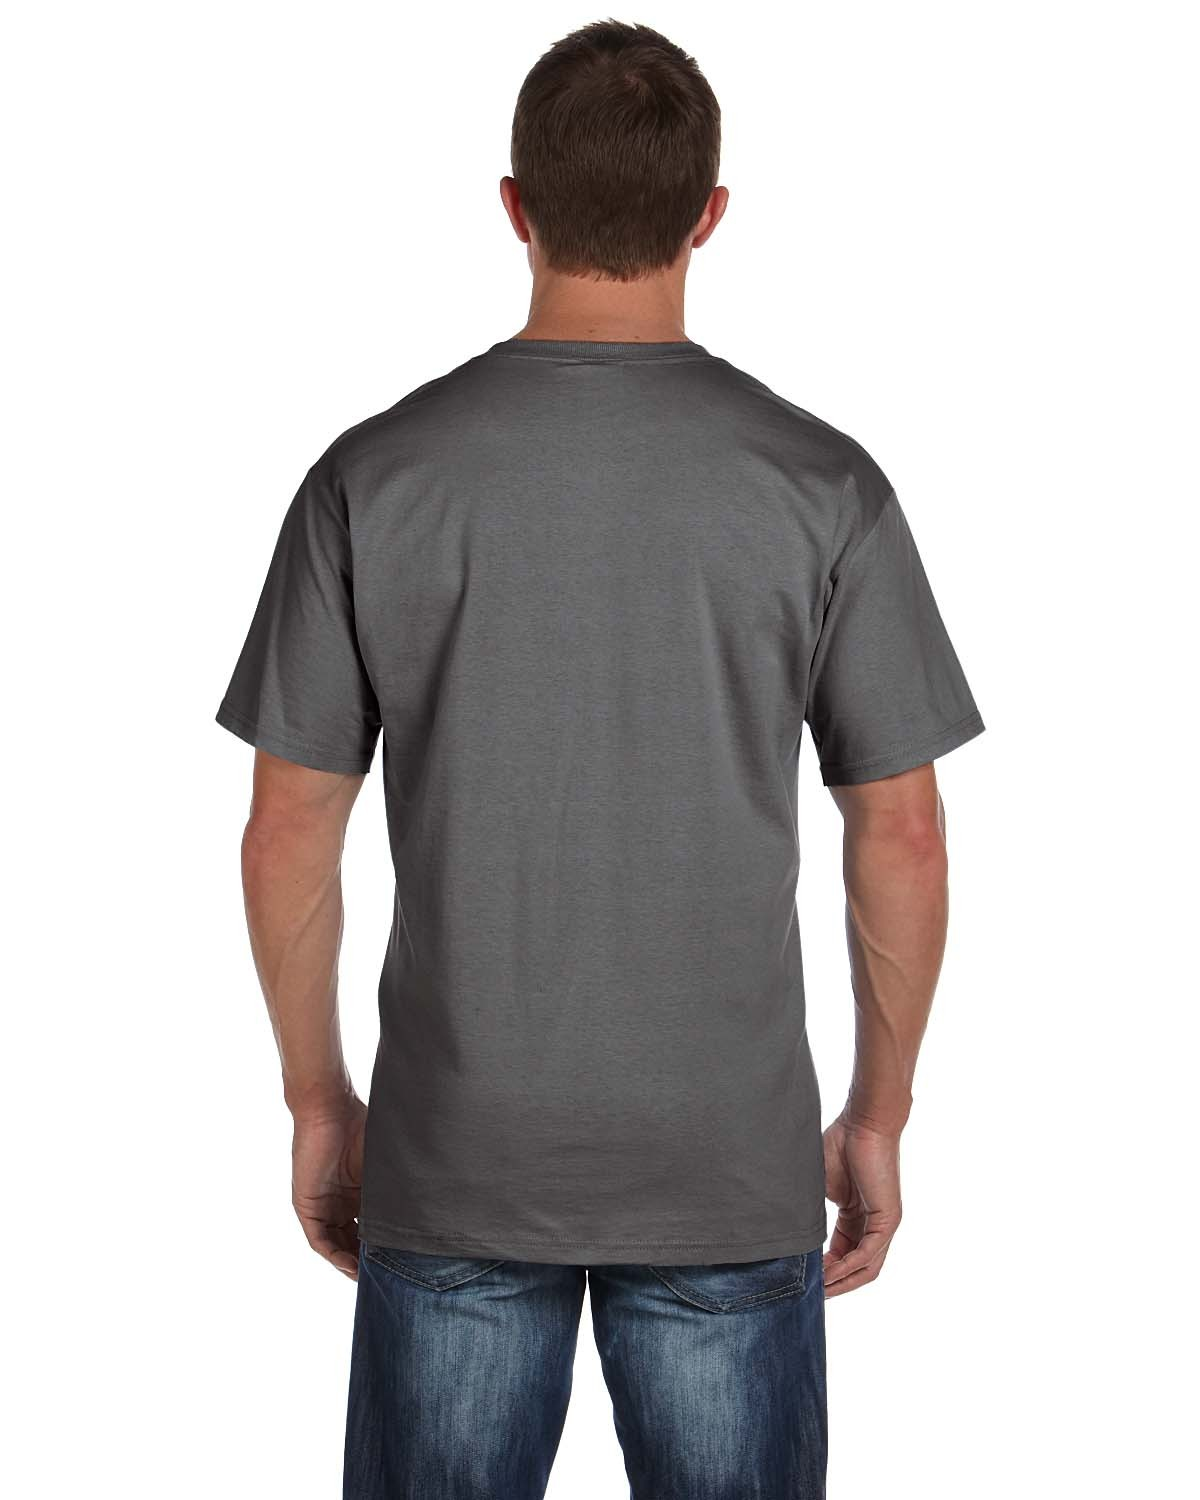 3931P Fruit of the Loom CHARCOAL GREY